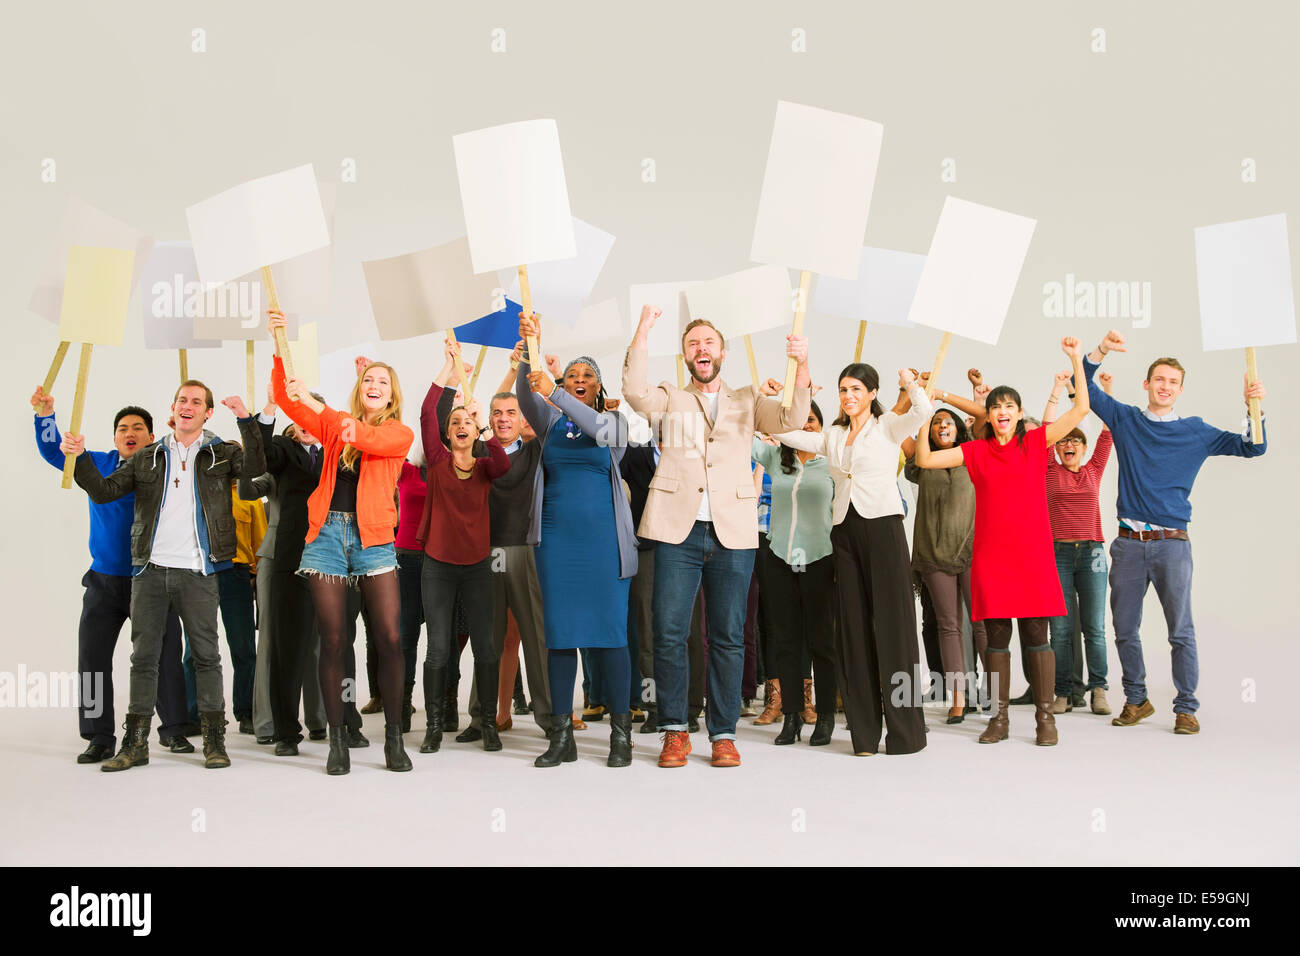 Diverse crowd with picket signs - Stock Image